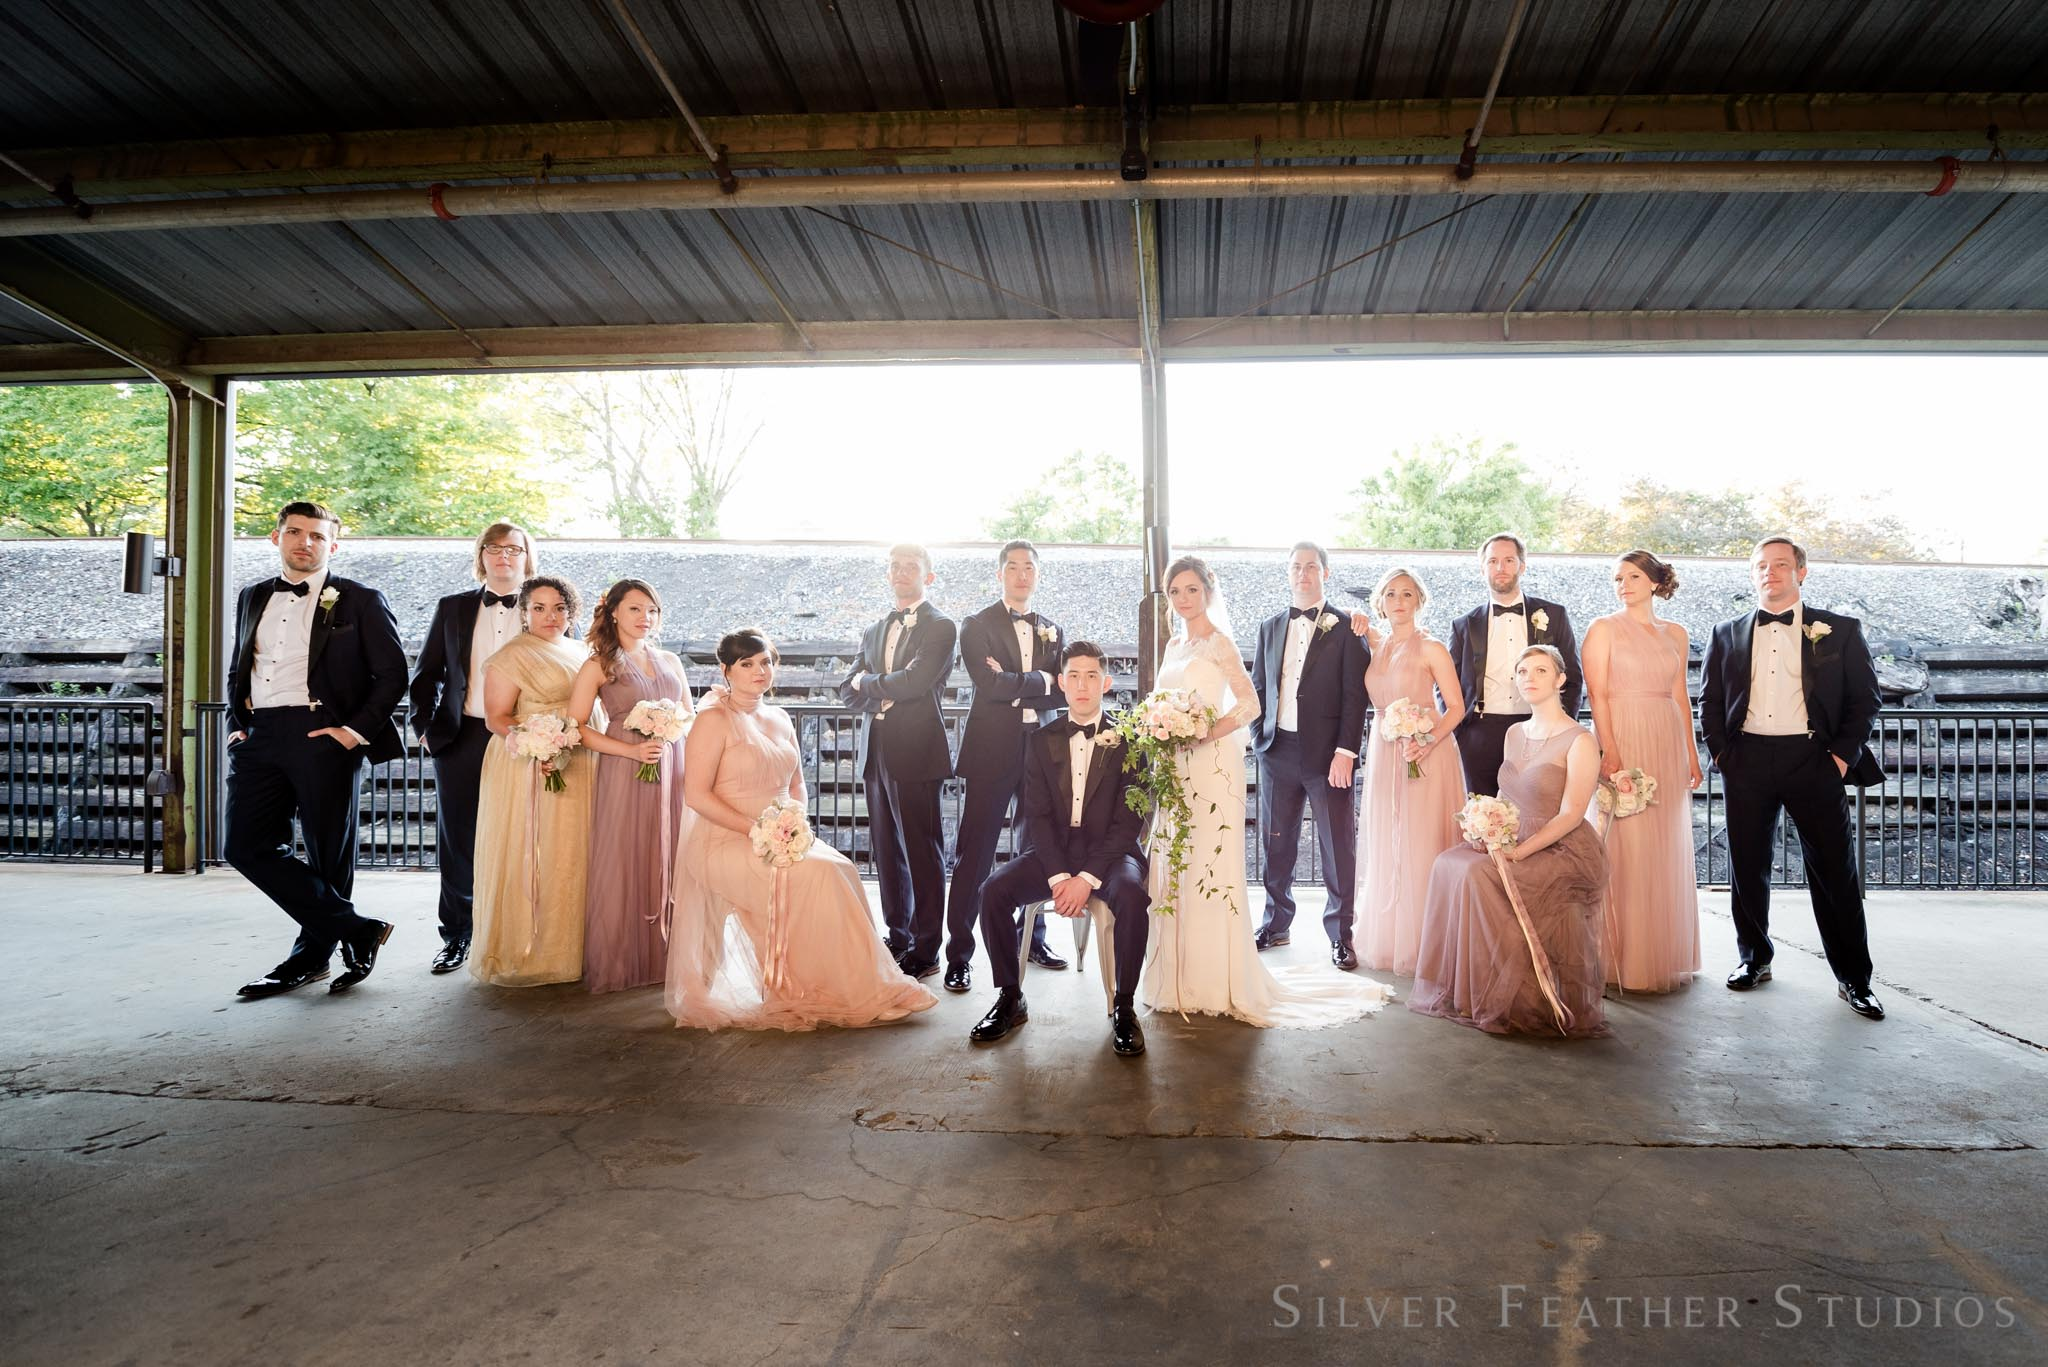 artistic and fun wedding photography at the cotton room © Silver Feather Studios, burlington nc wedding photographer